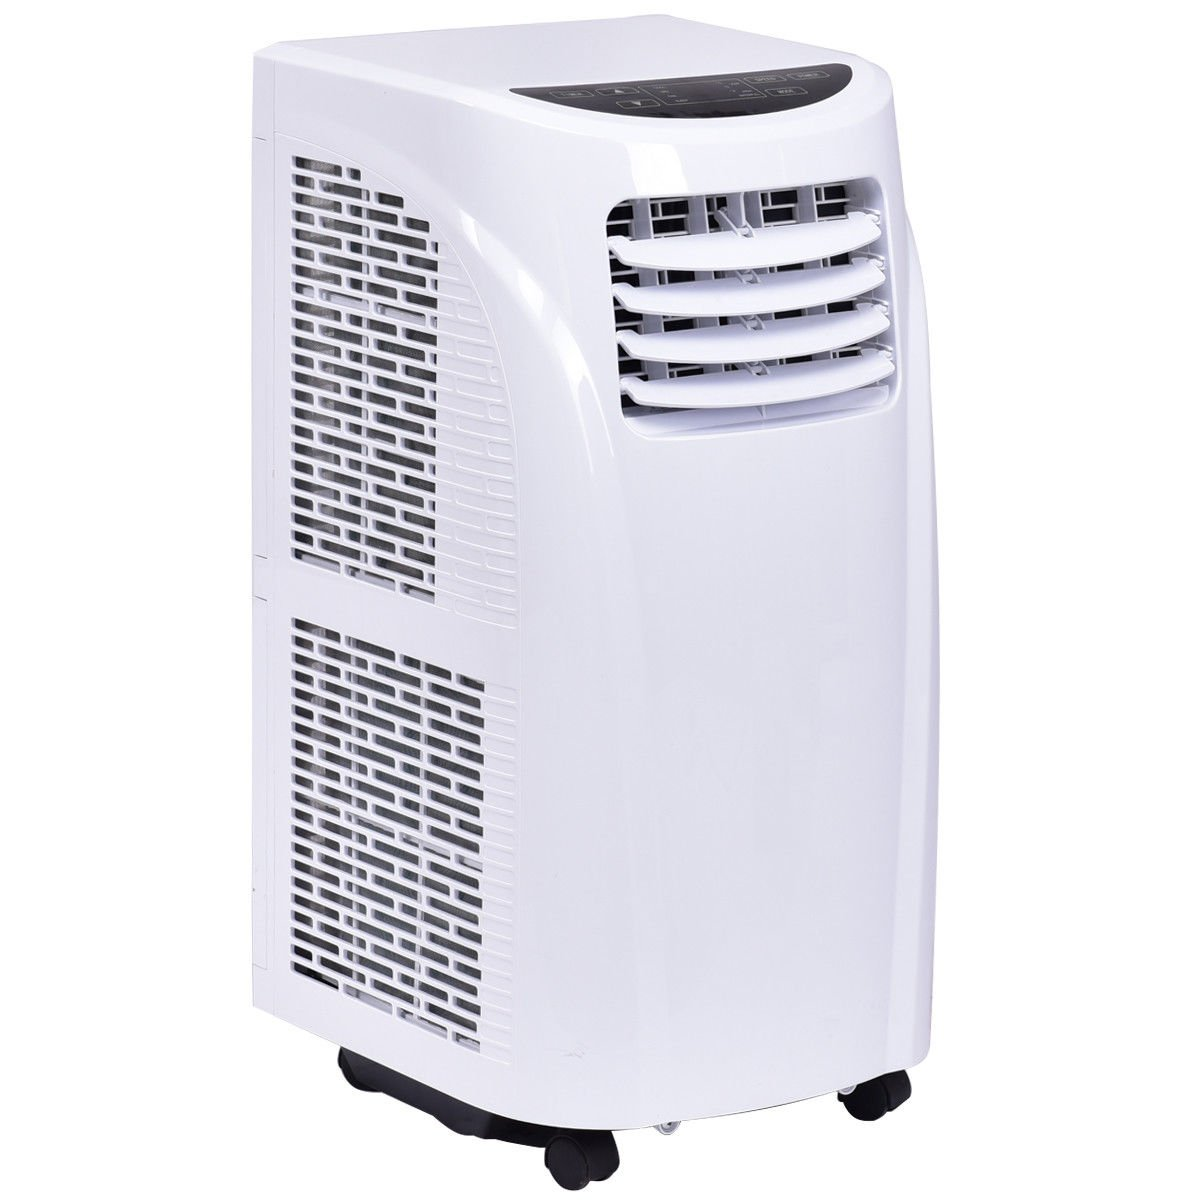 Costway 10,000 BTU Portable Air Conditioner with Remote Control Dehumidifier Function Window Wall Mount in White by COSTWAY (Image #4)